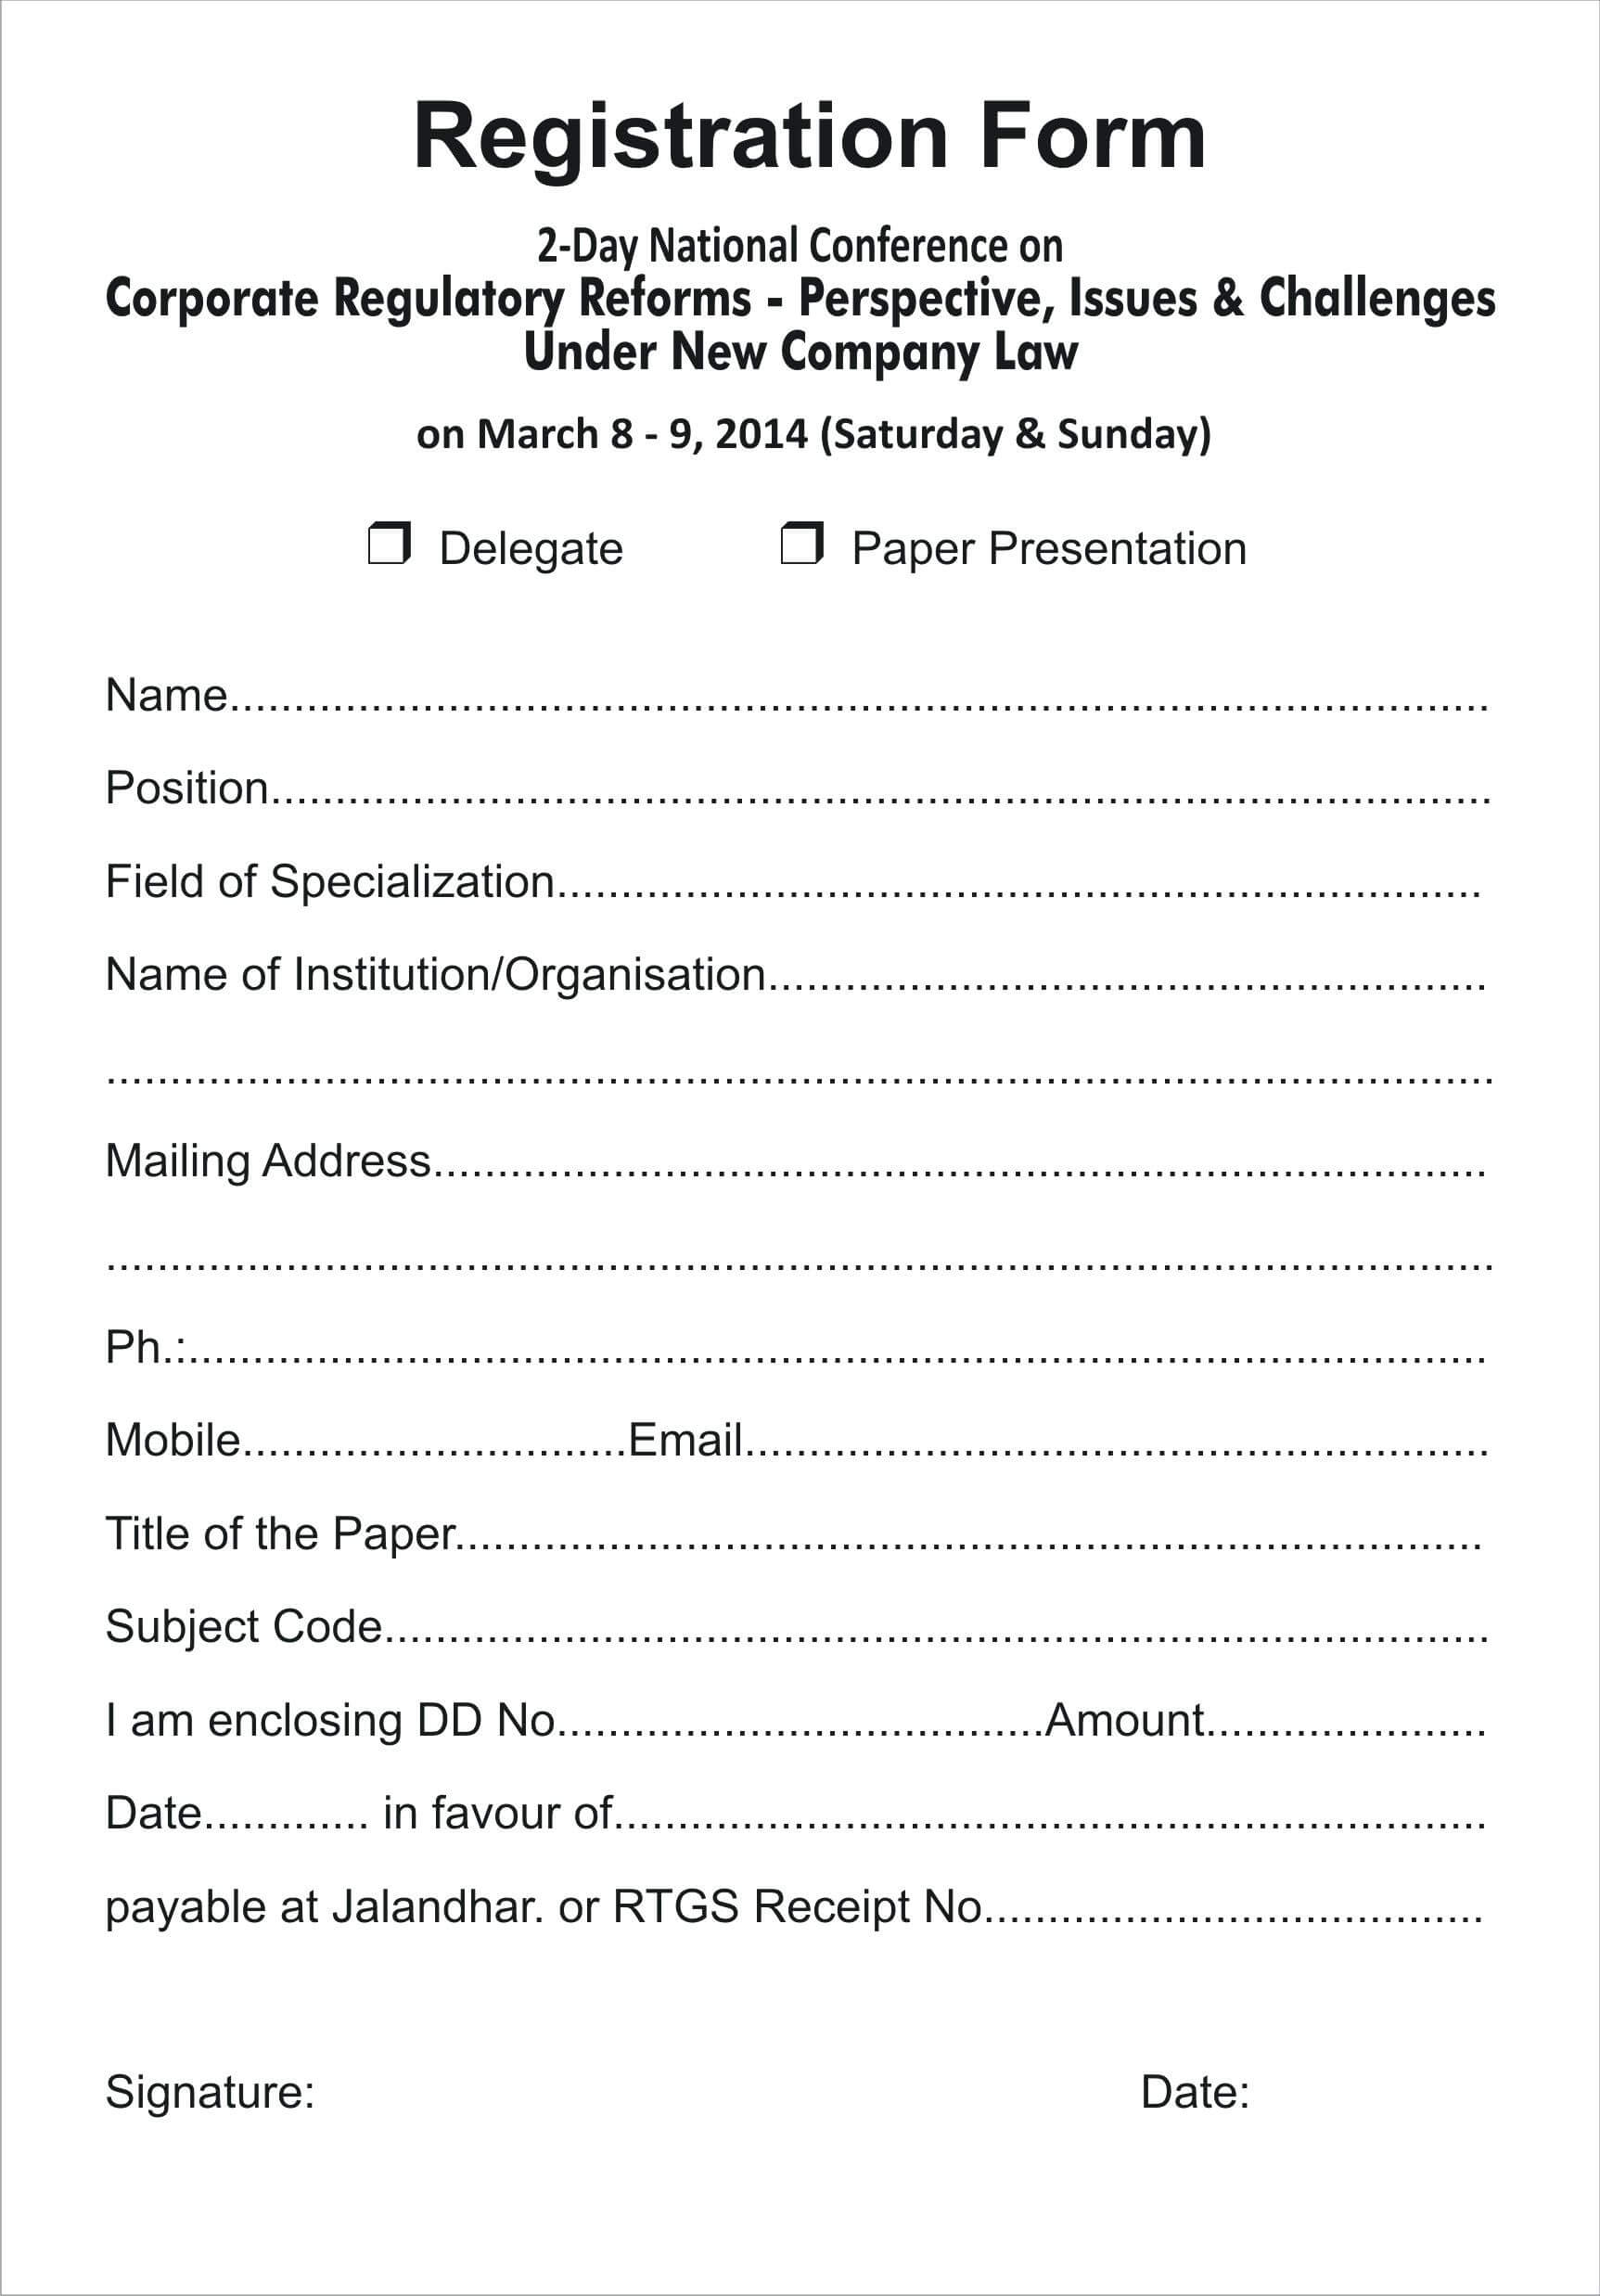 010 Printable Registration Form Templates Word Excel Samples Within Registration Form Template Word Free